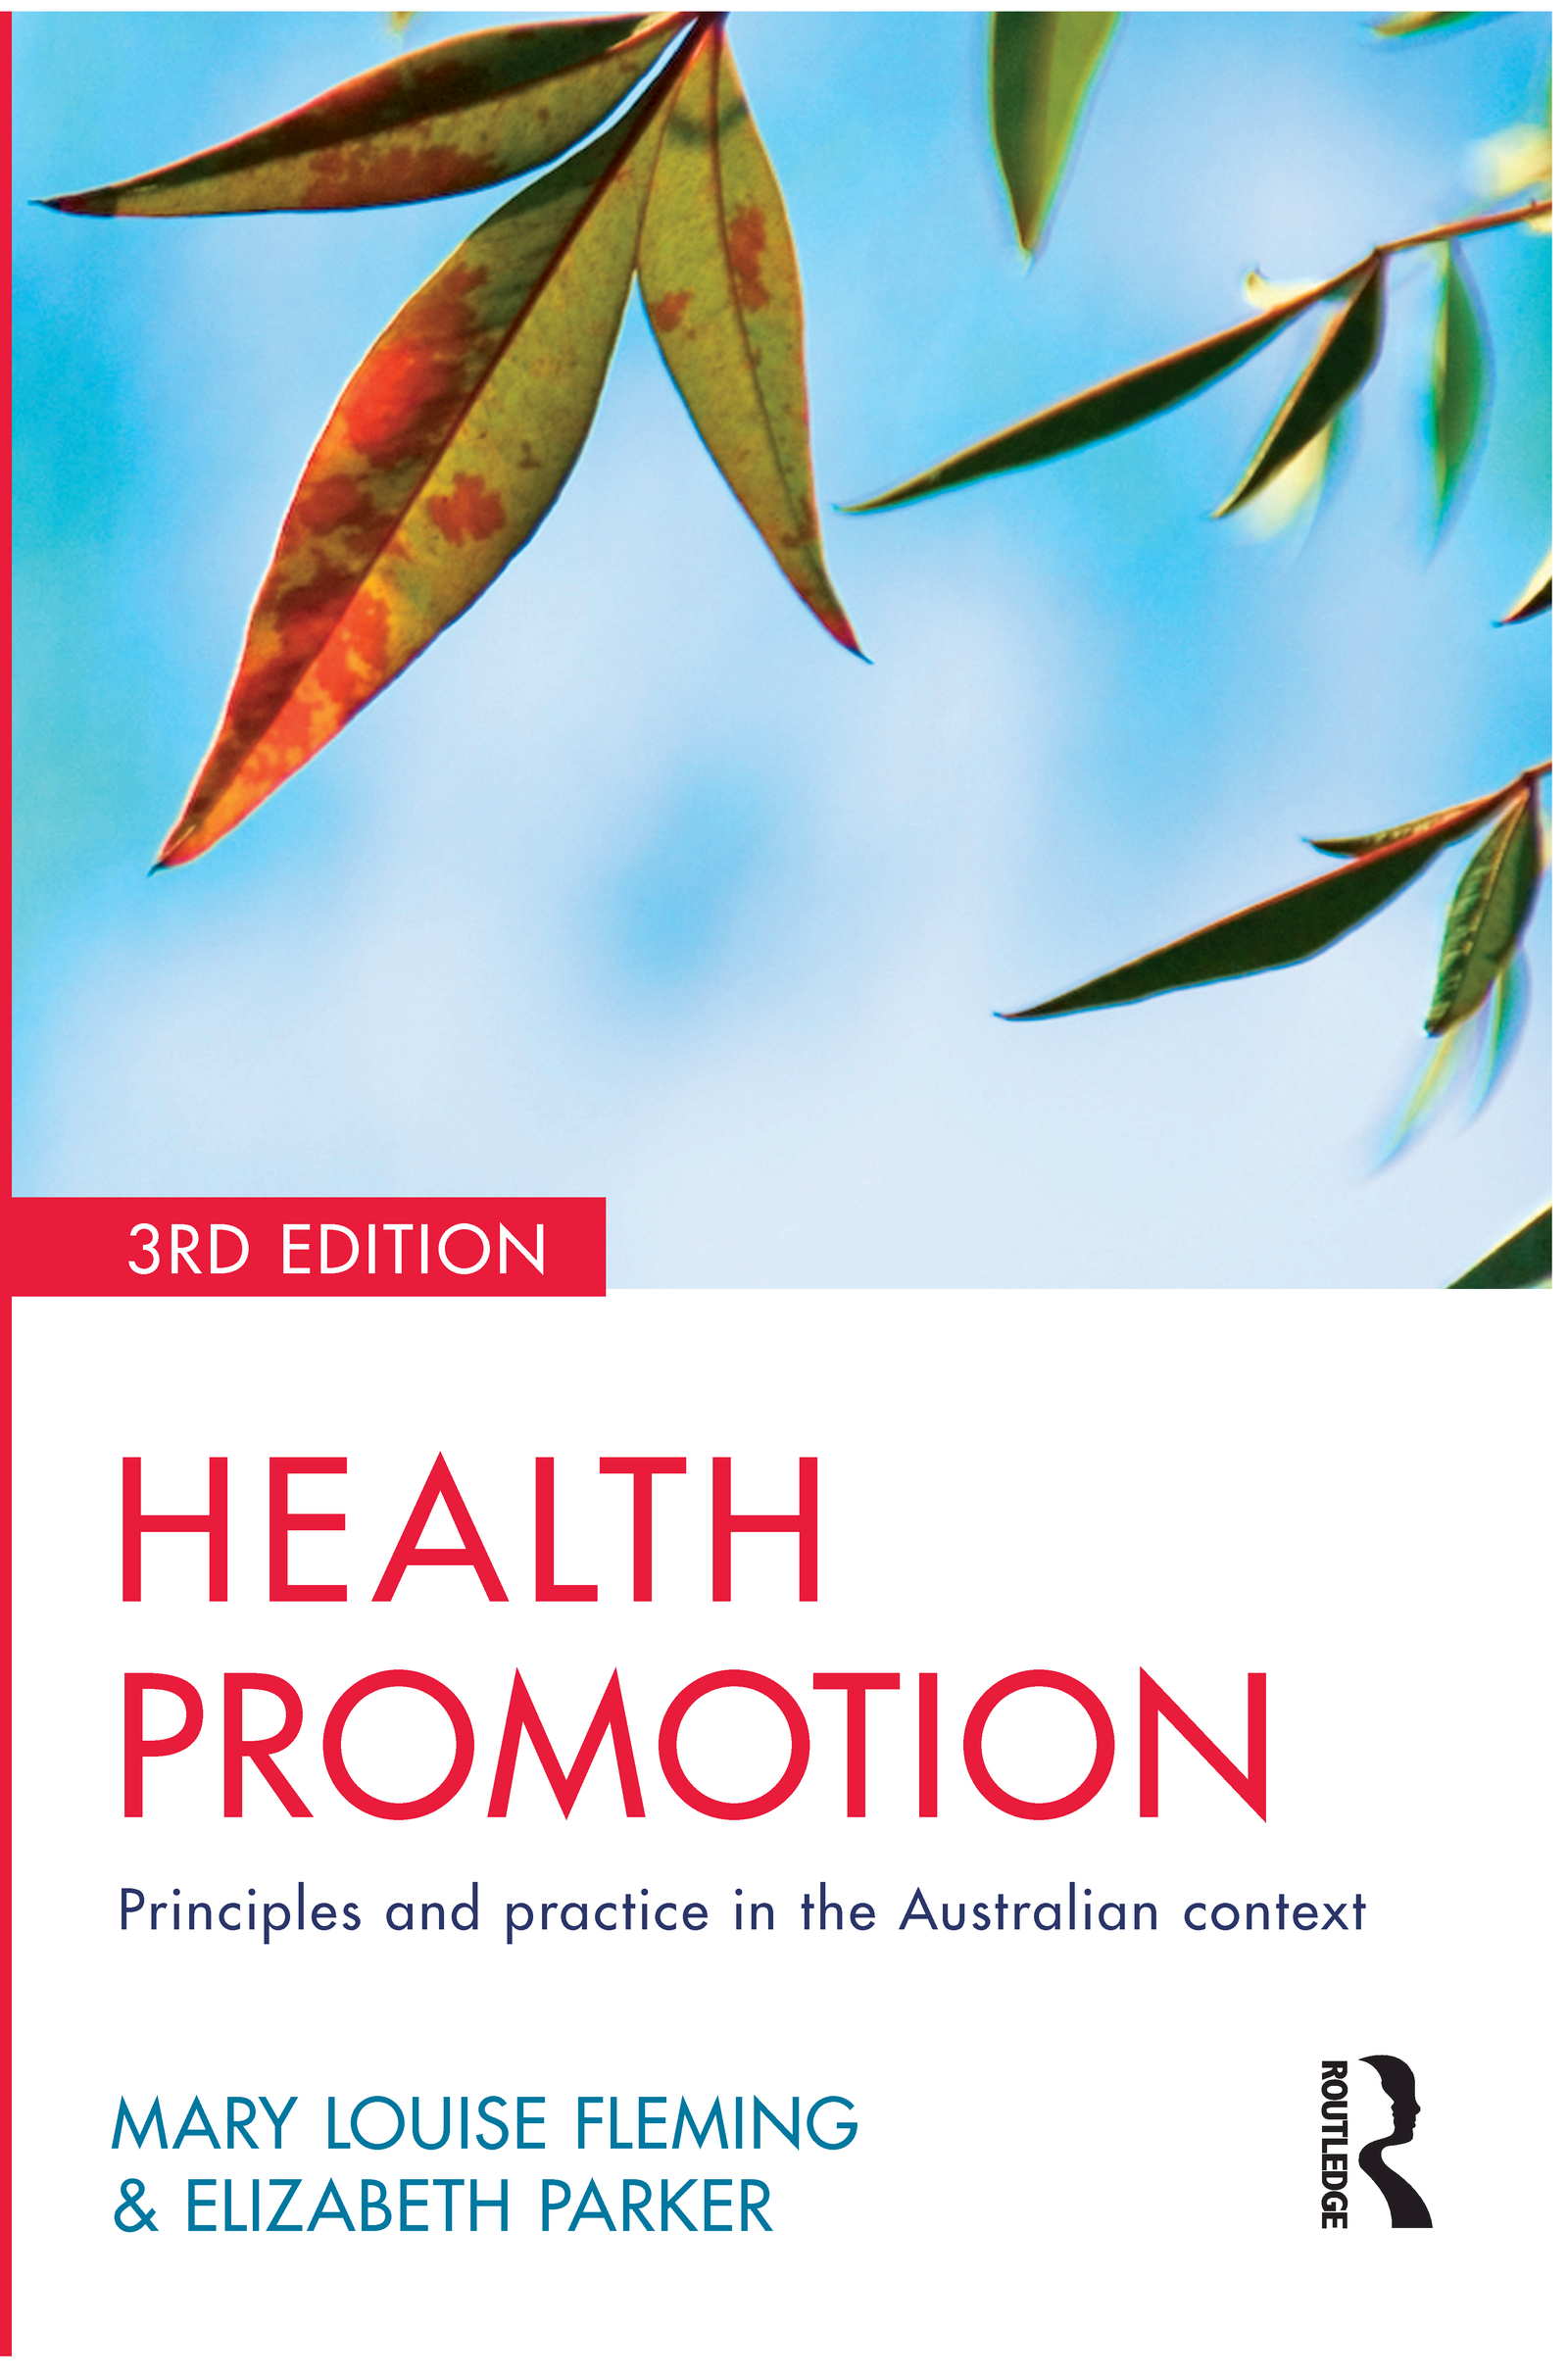 National strategies for promoting health in Australi